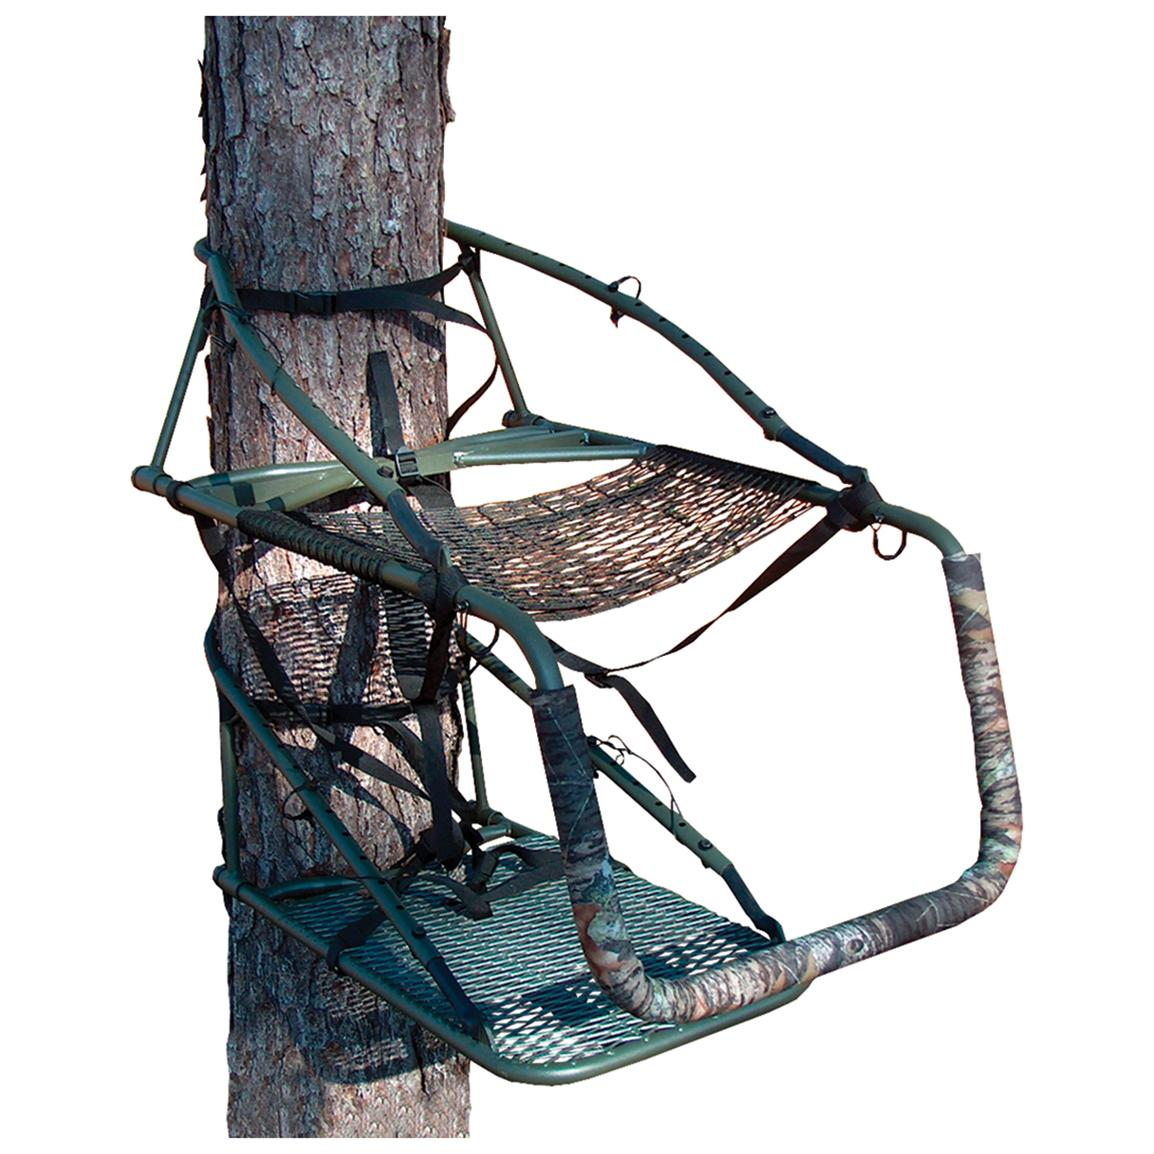 Ol' Man Outdoors® Aluminum Grand Multi - Vision Pro Climbing Tree Stand